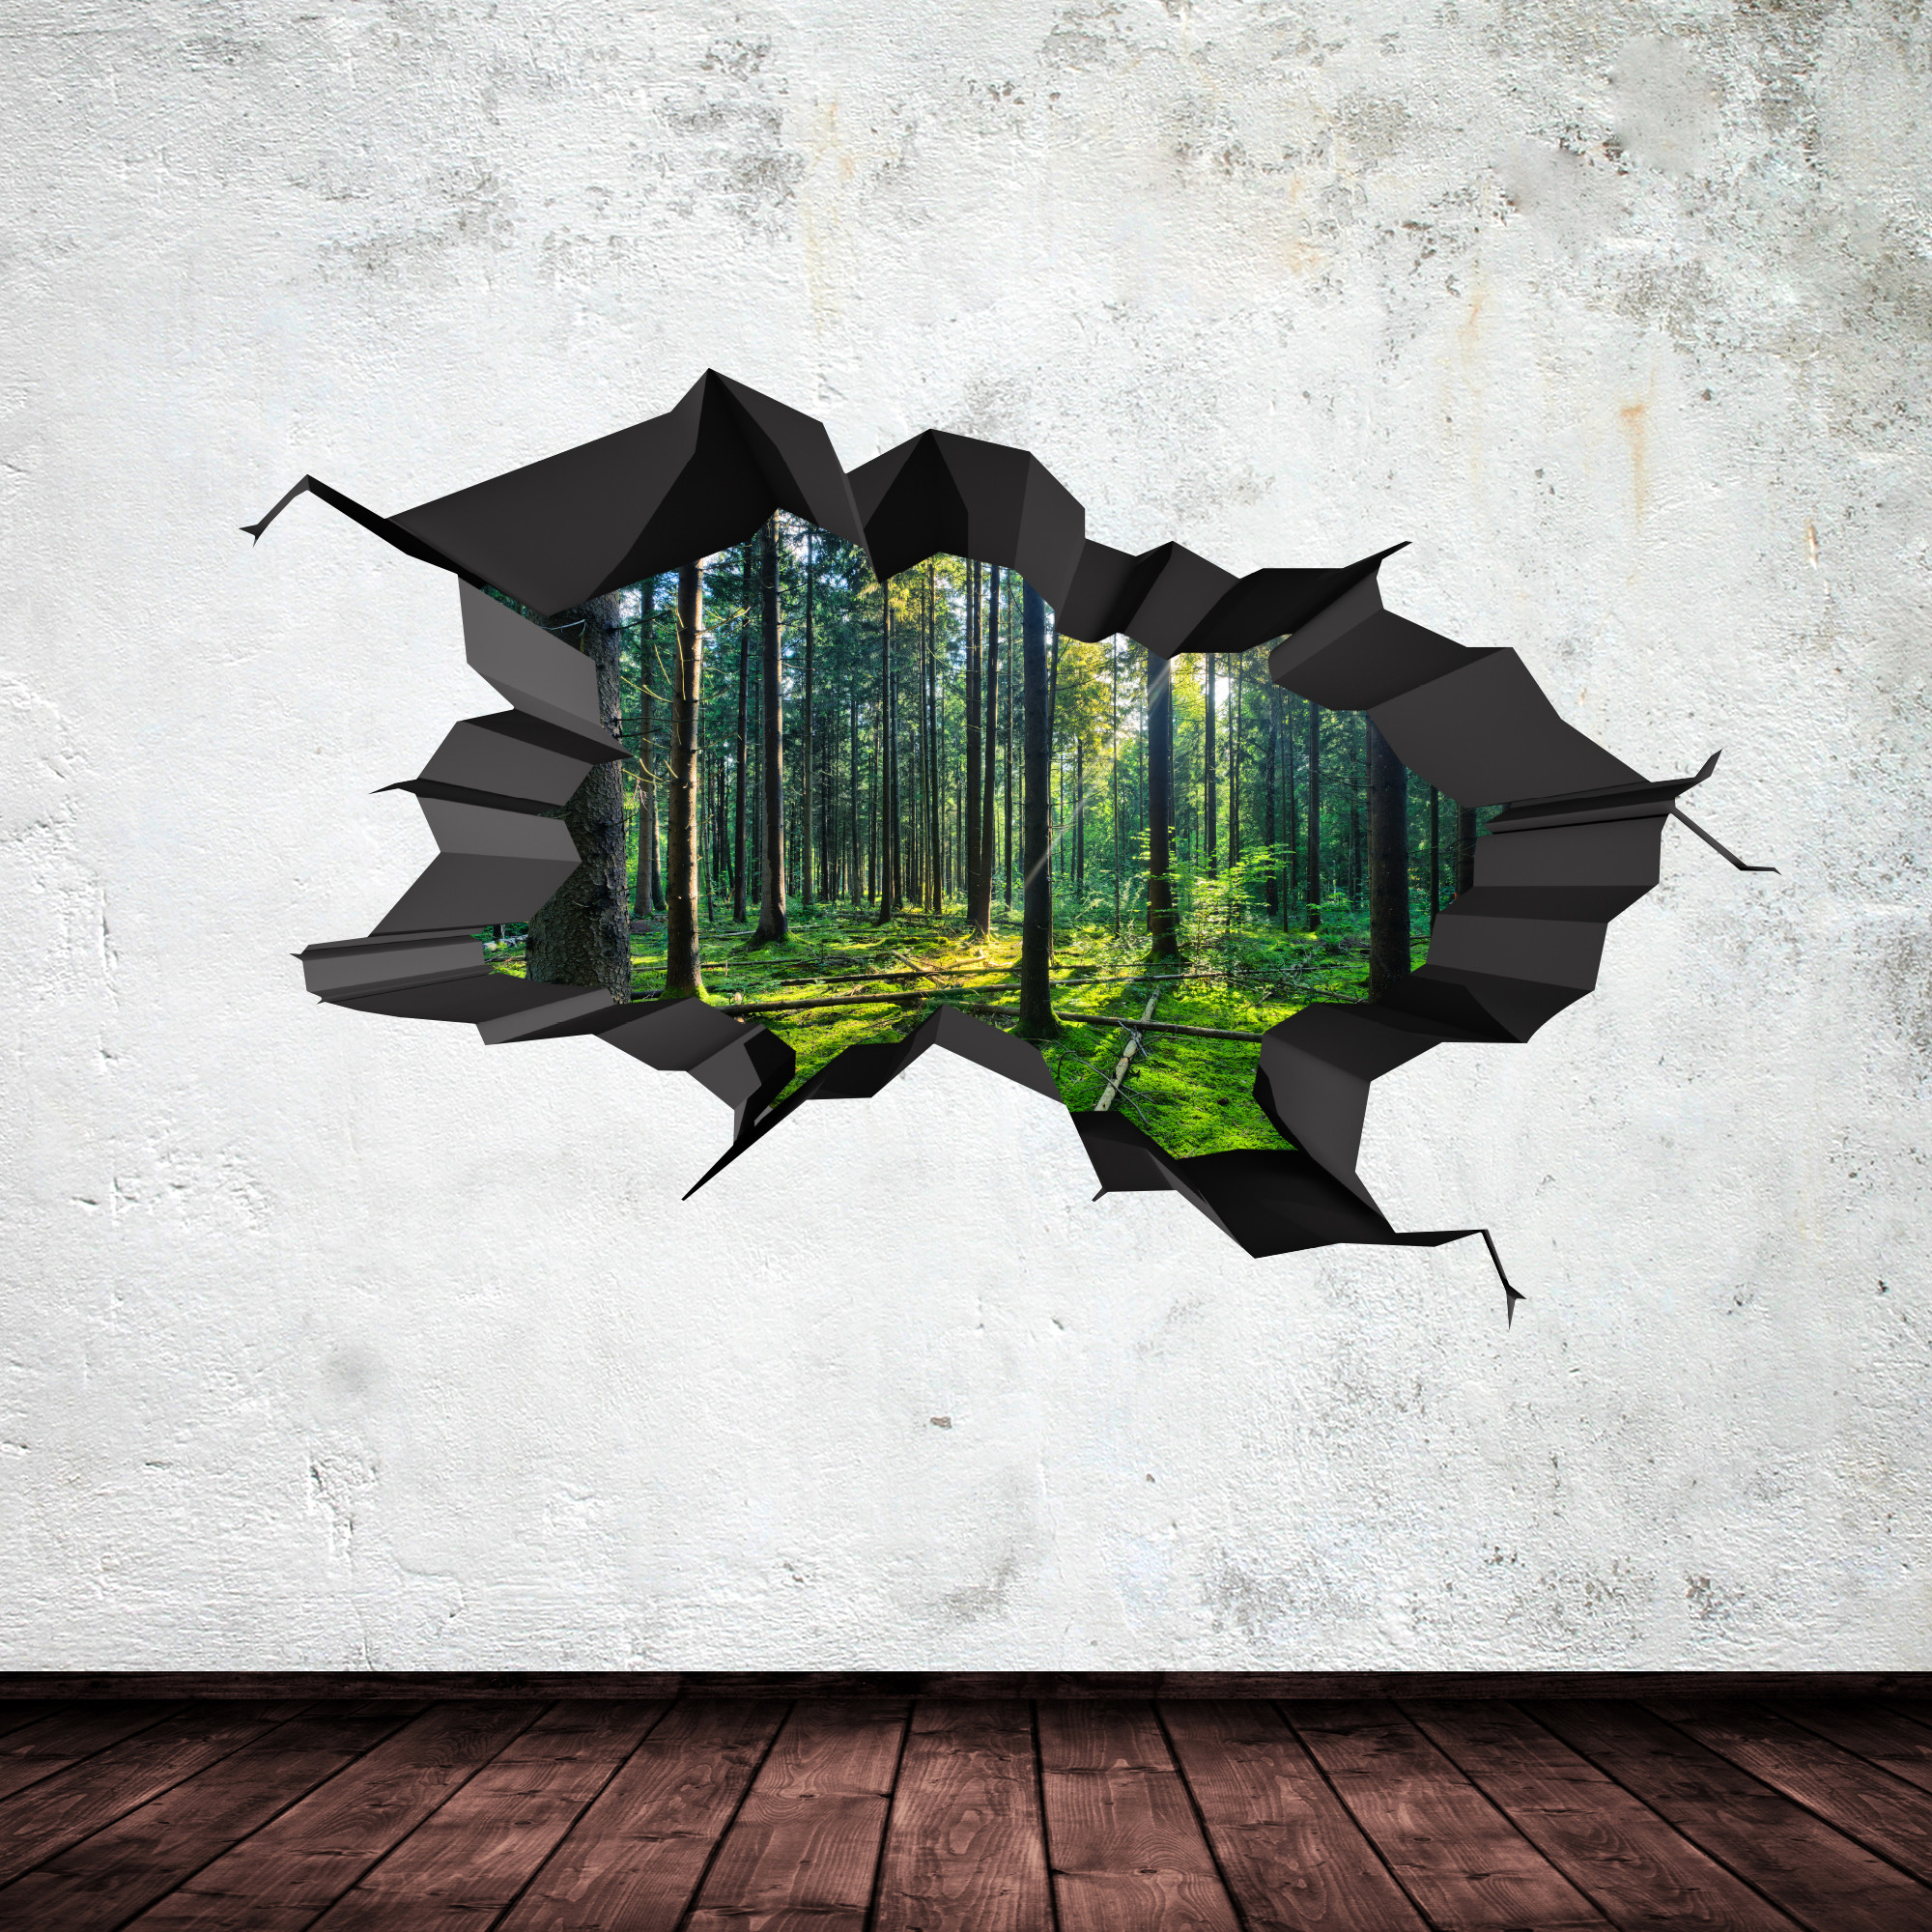 Best ideas about 3D Wall Art . Save or Pin FULL COLOUR WOODS FOREST TREES JUNGLE CRACKED 3D WALL ART Now.